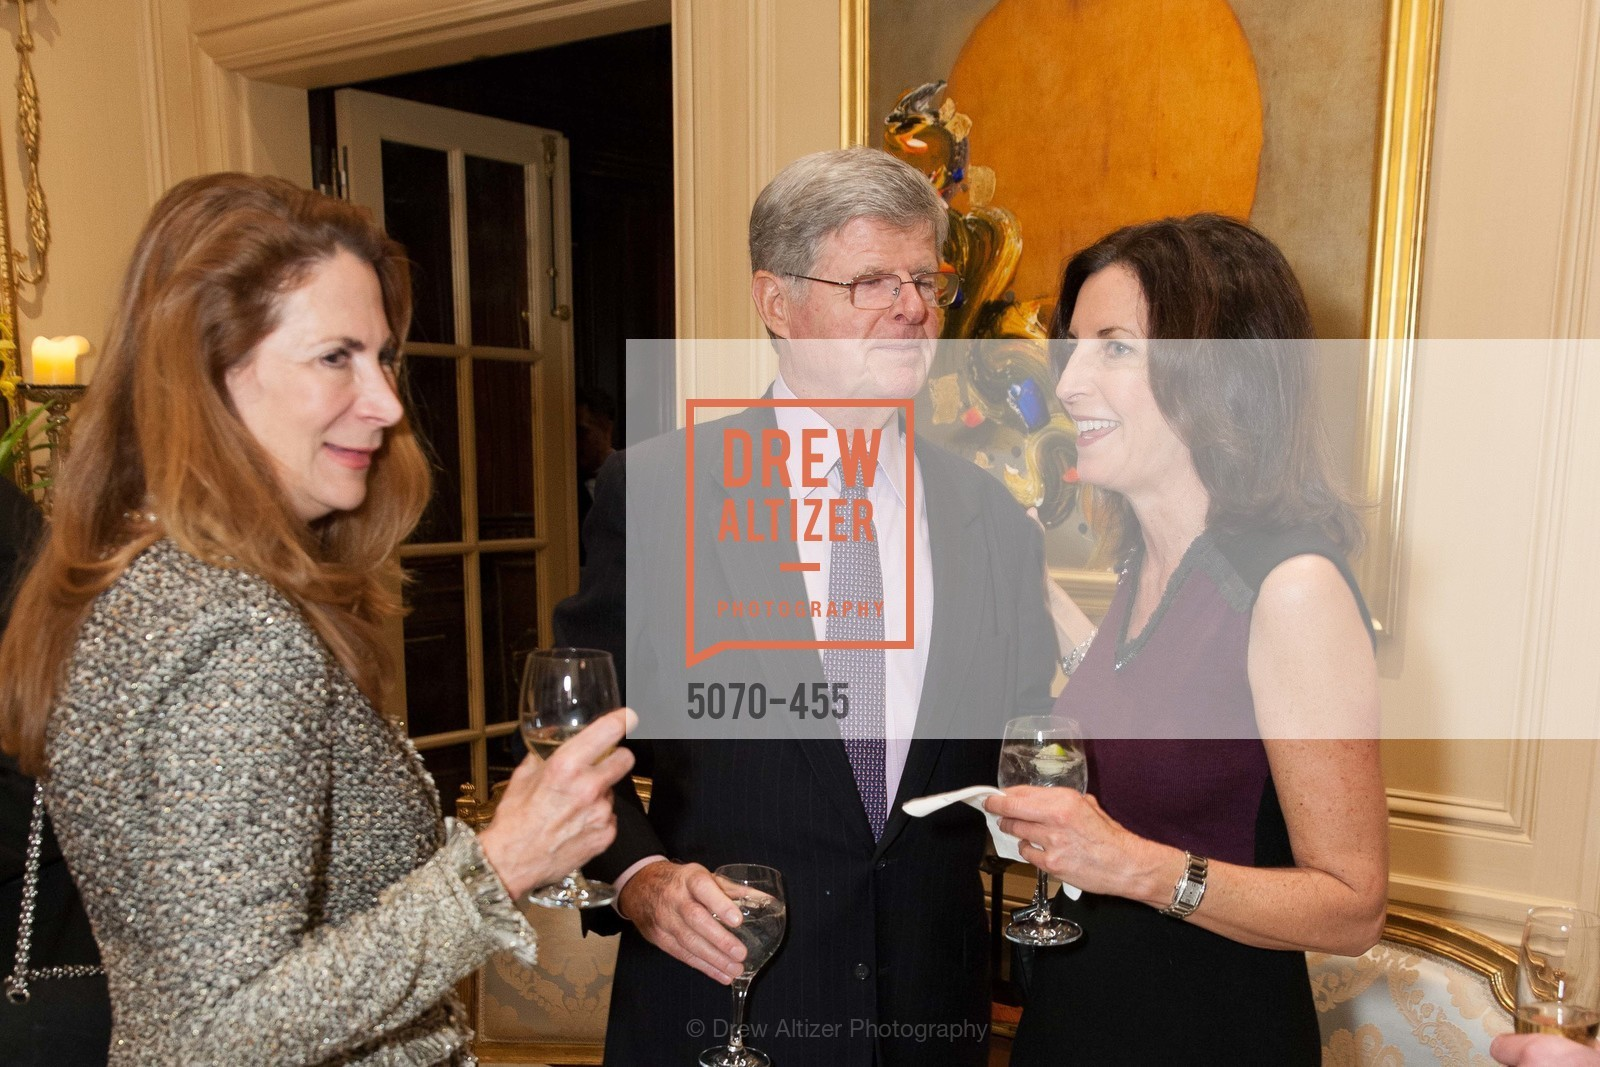 Patricia Ferrin Loucks, Richard Barker, Karen Bergman, SAN FRANCISCO BALLET Grand Benefactors Reception, US. US, January 8th, 2014,Drew Altizer, Drew Altizer Photography, full-service event agency, private events, San Francisco photographer, photographer California